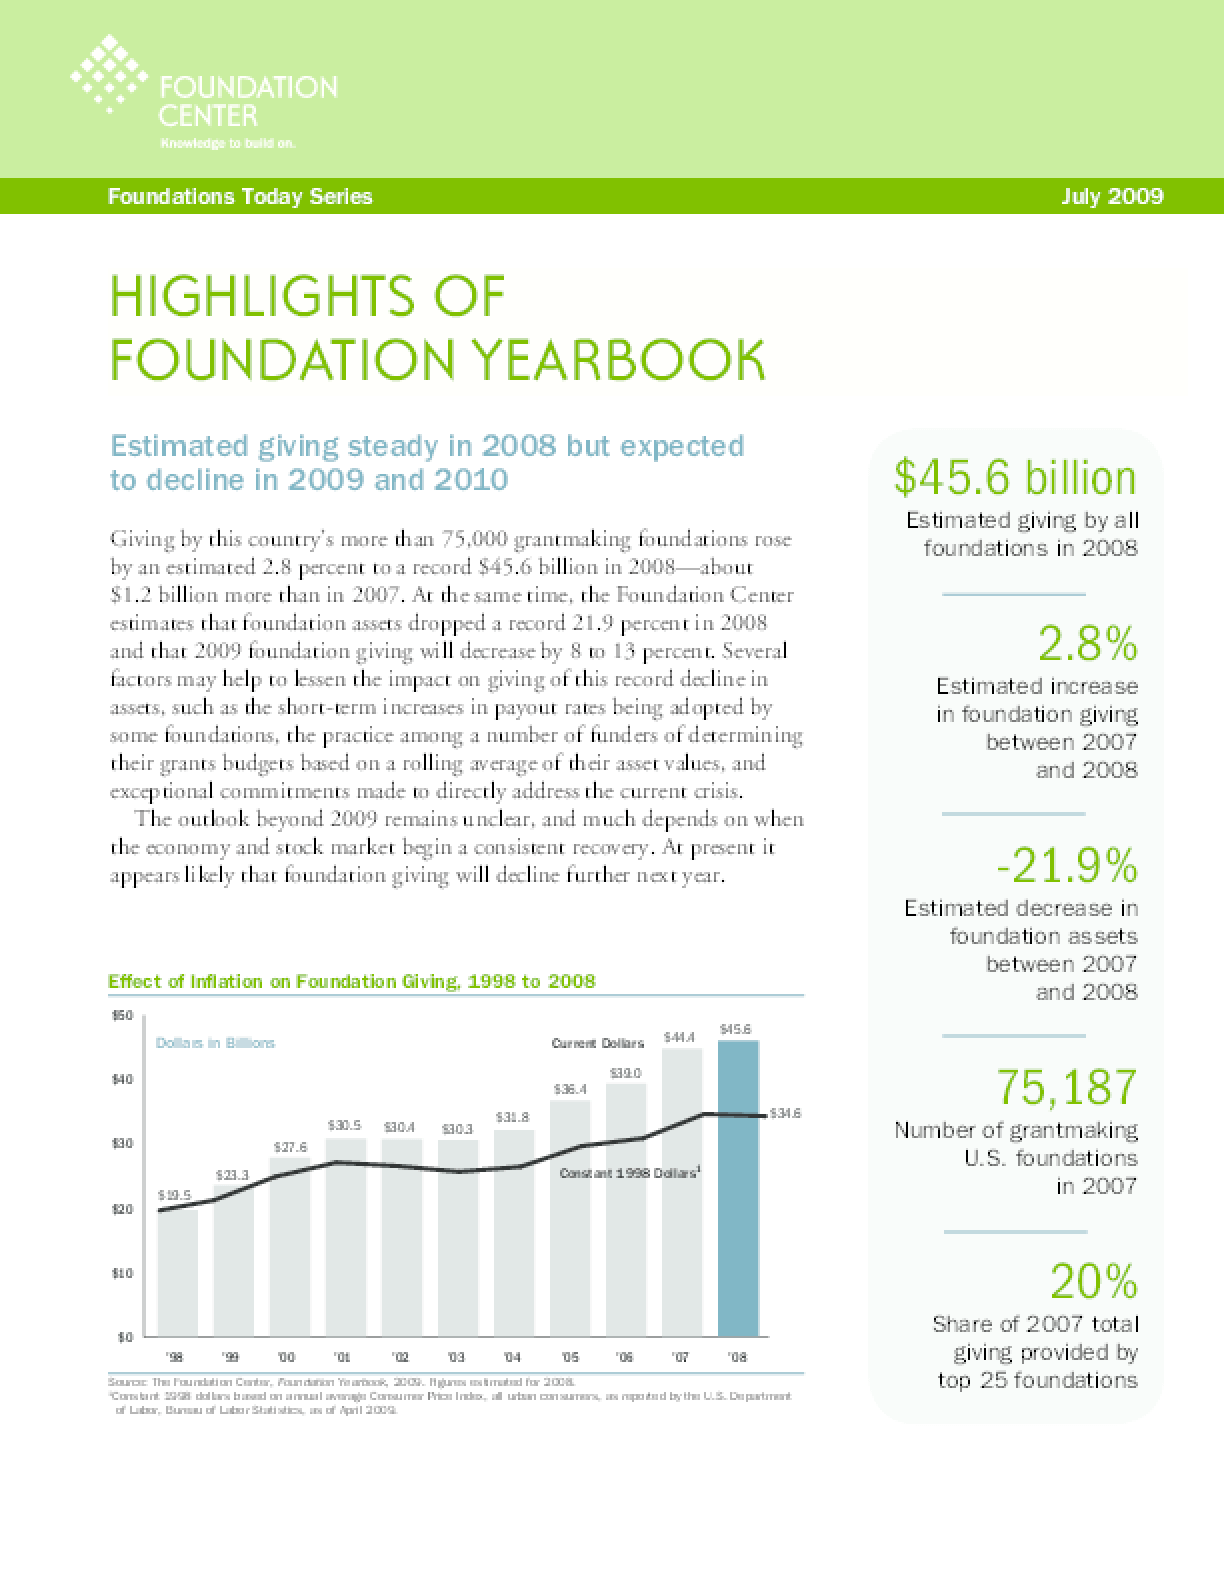 Foundations Today: Foundation Yearbook, 2009 edition (Highlights)